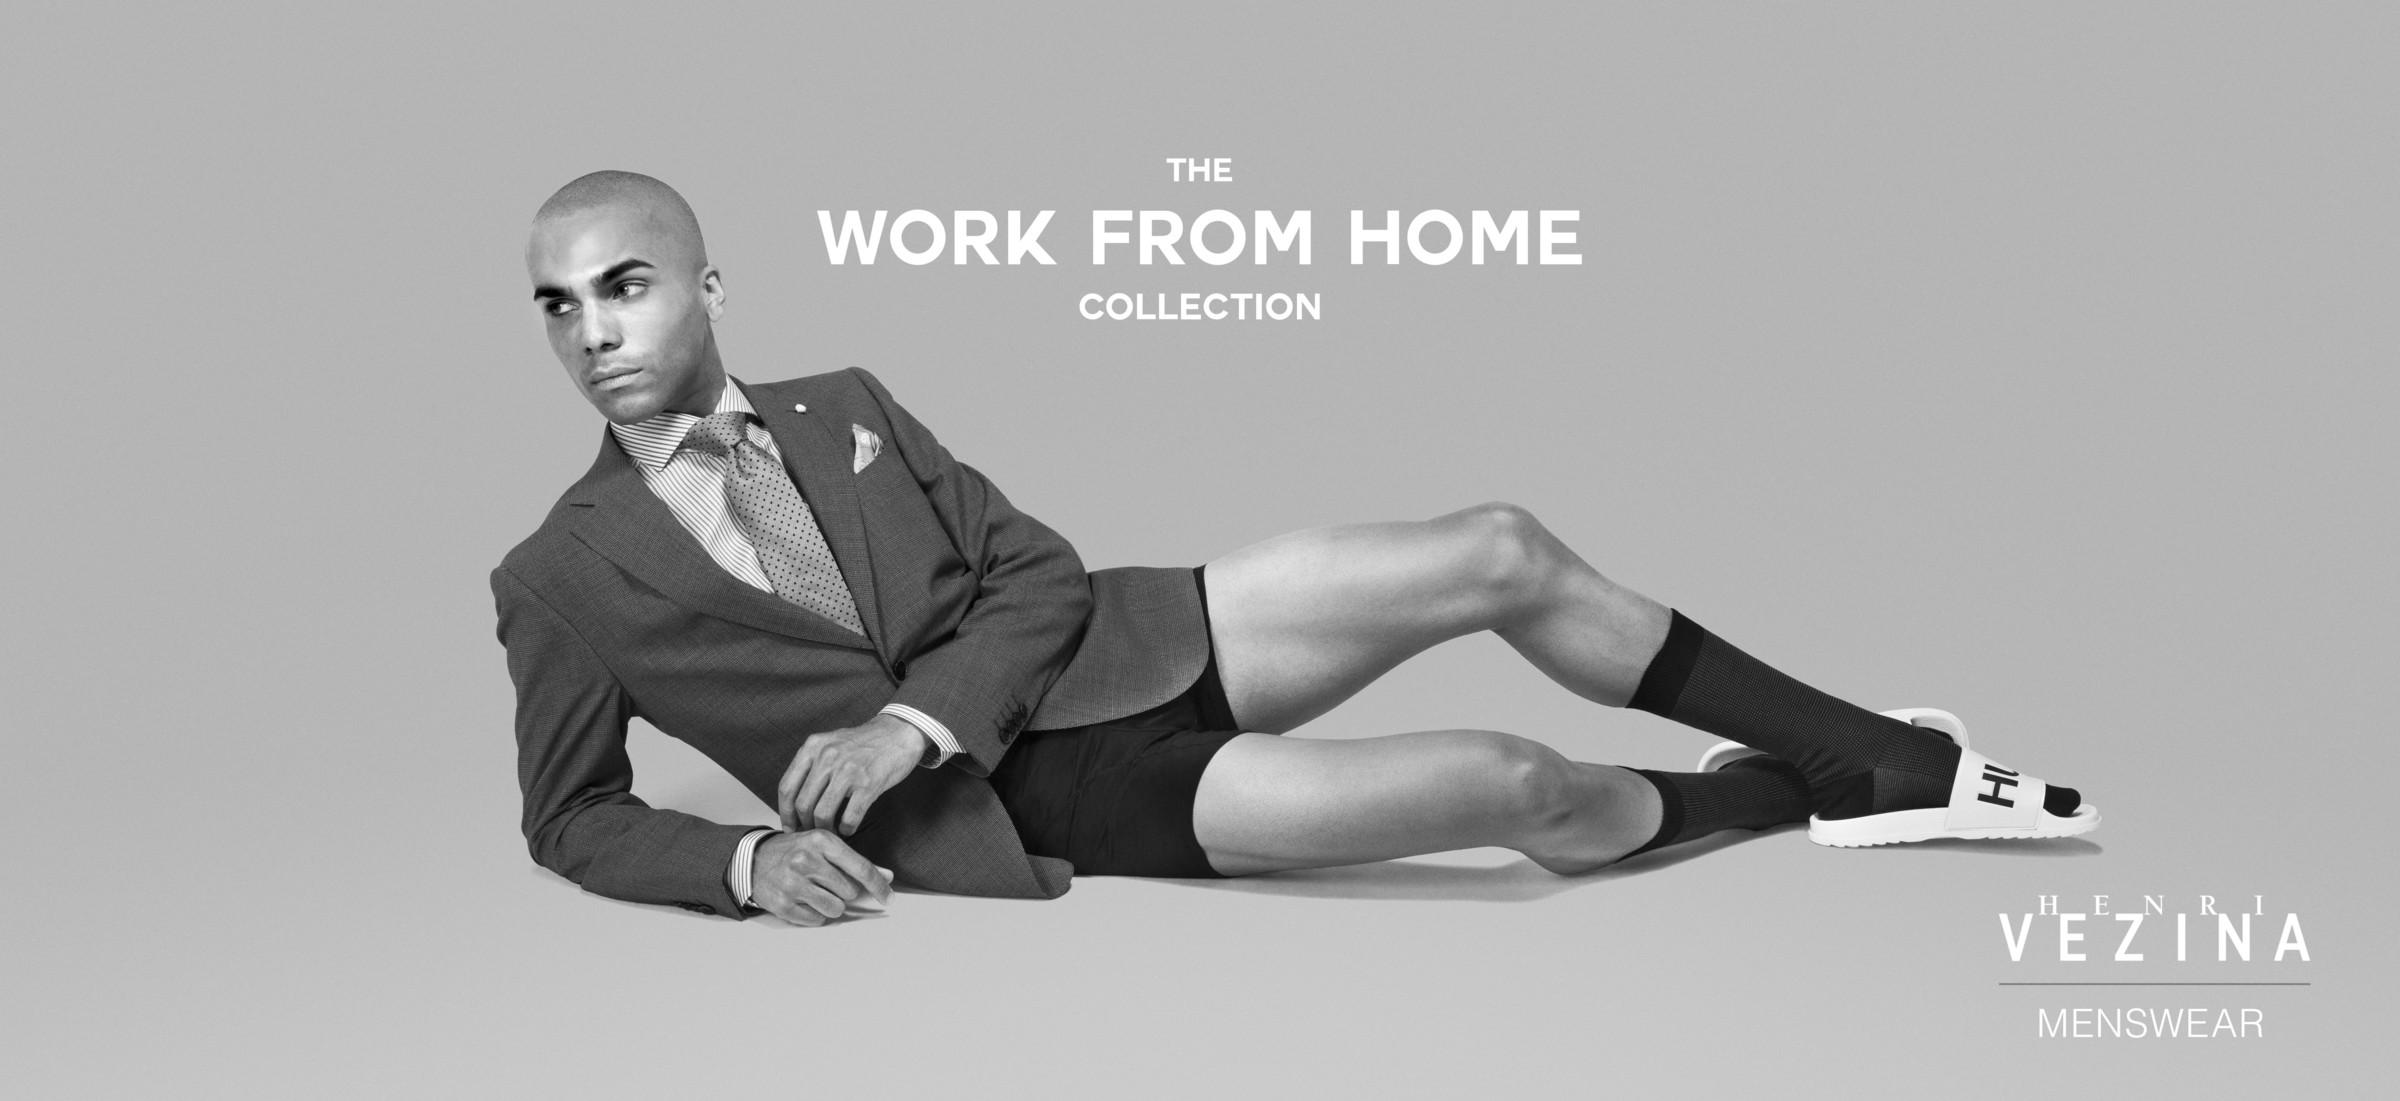 The Work From Home Collection | Henri Vézina